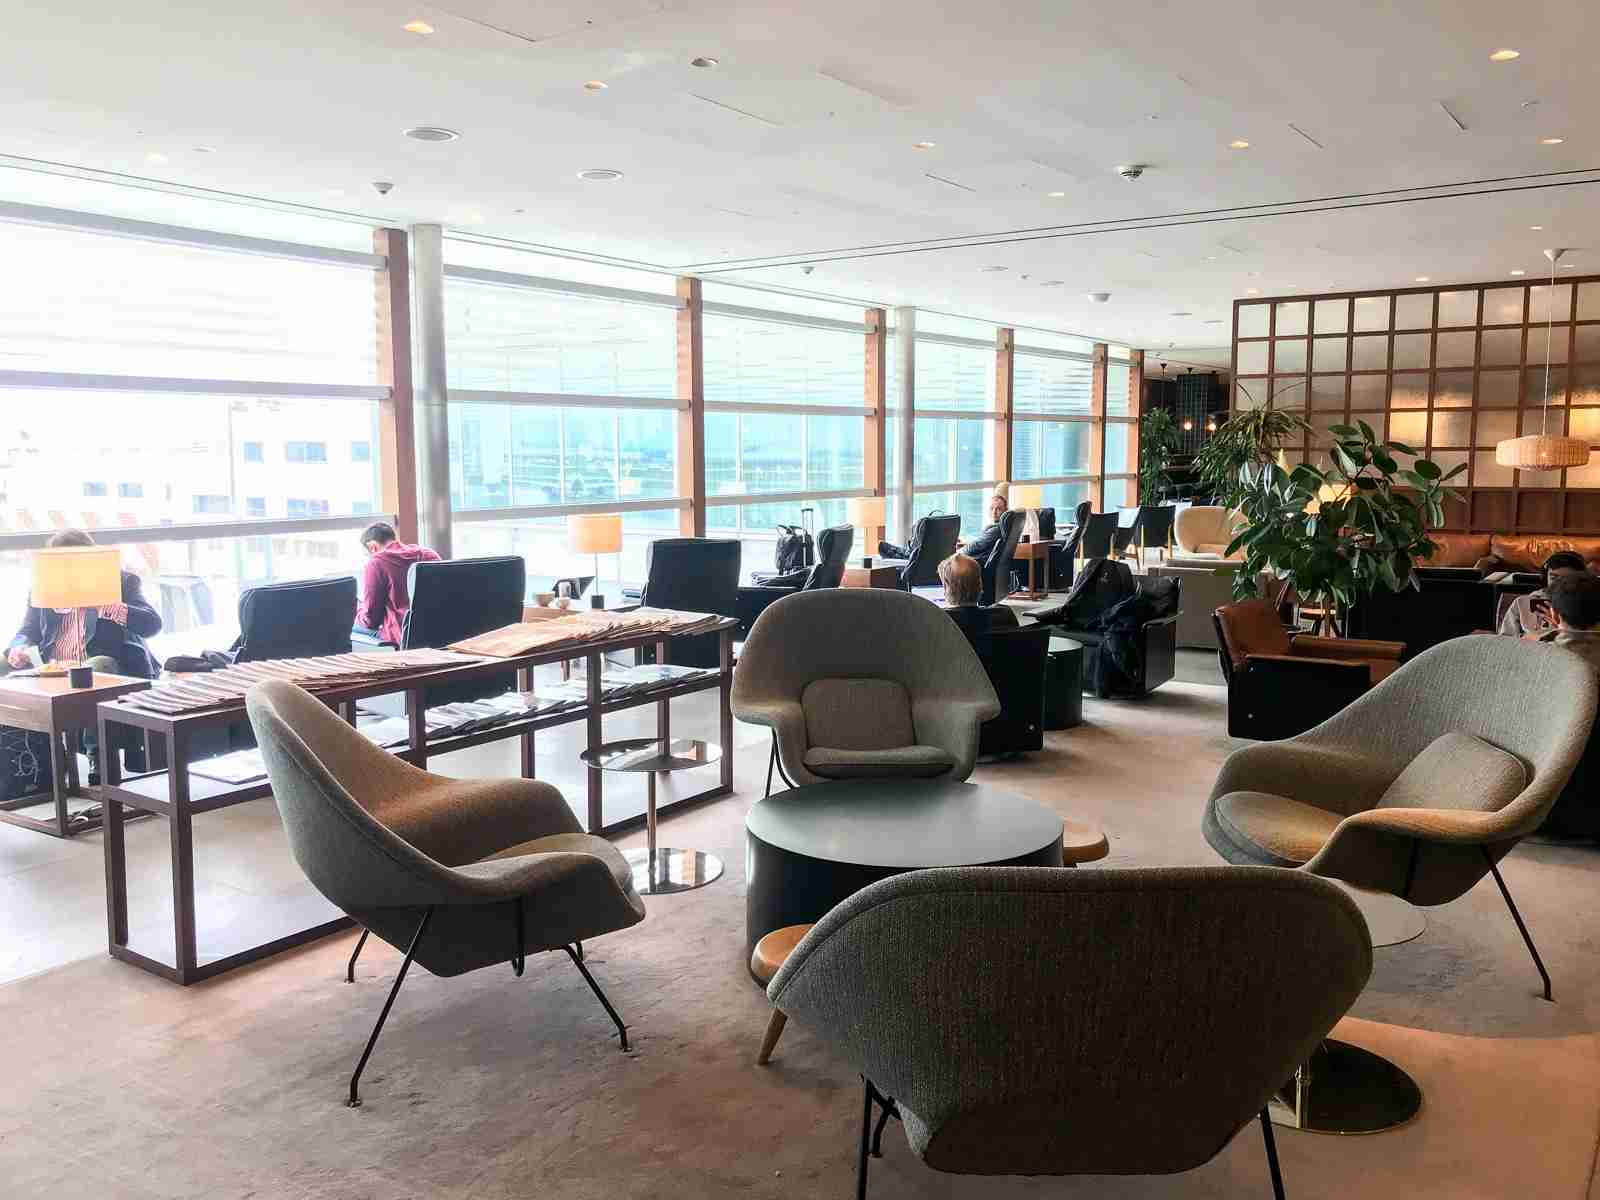 Cathay Pacific lounge in LHR Terminal 3. (Photo by Daniel Ross/The Points Guy)